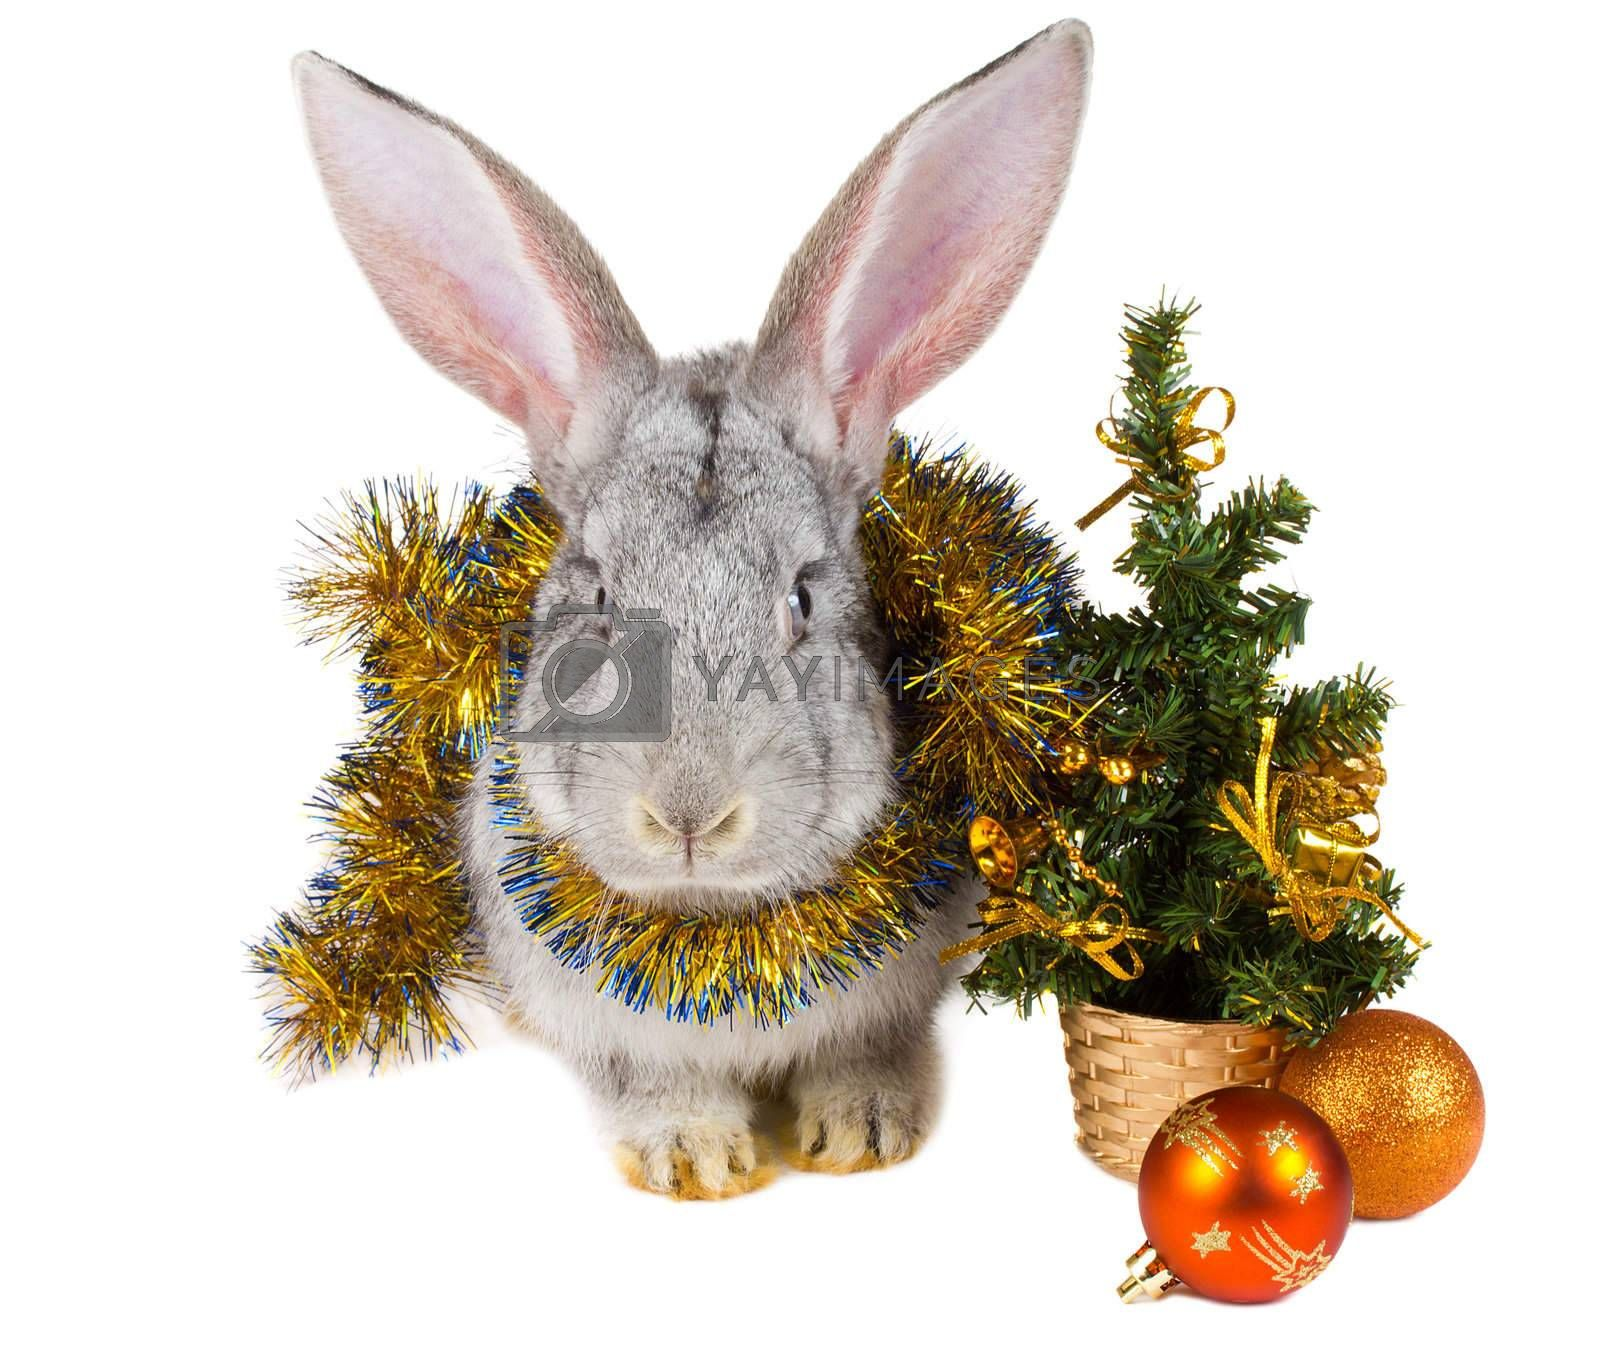 close-up gray rabbit and christmas decorations, isolated on white